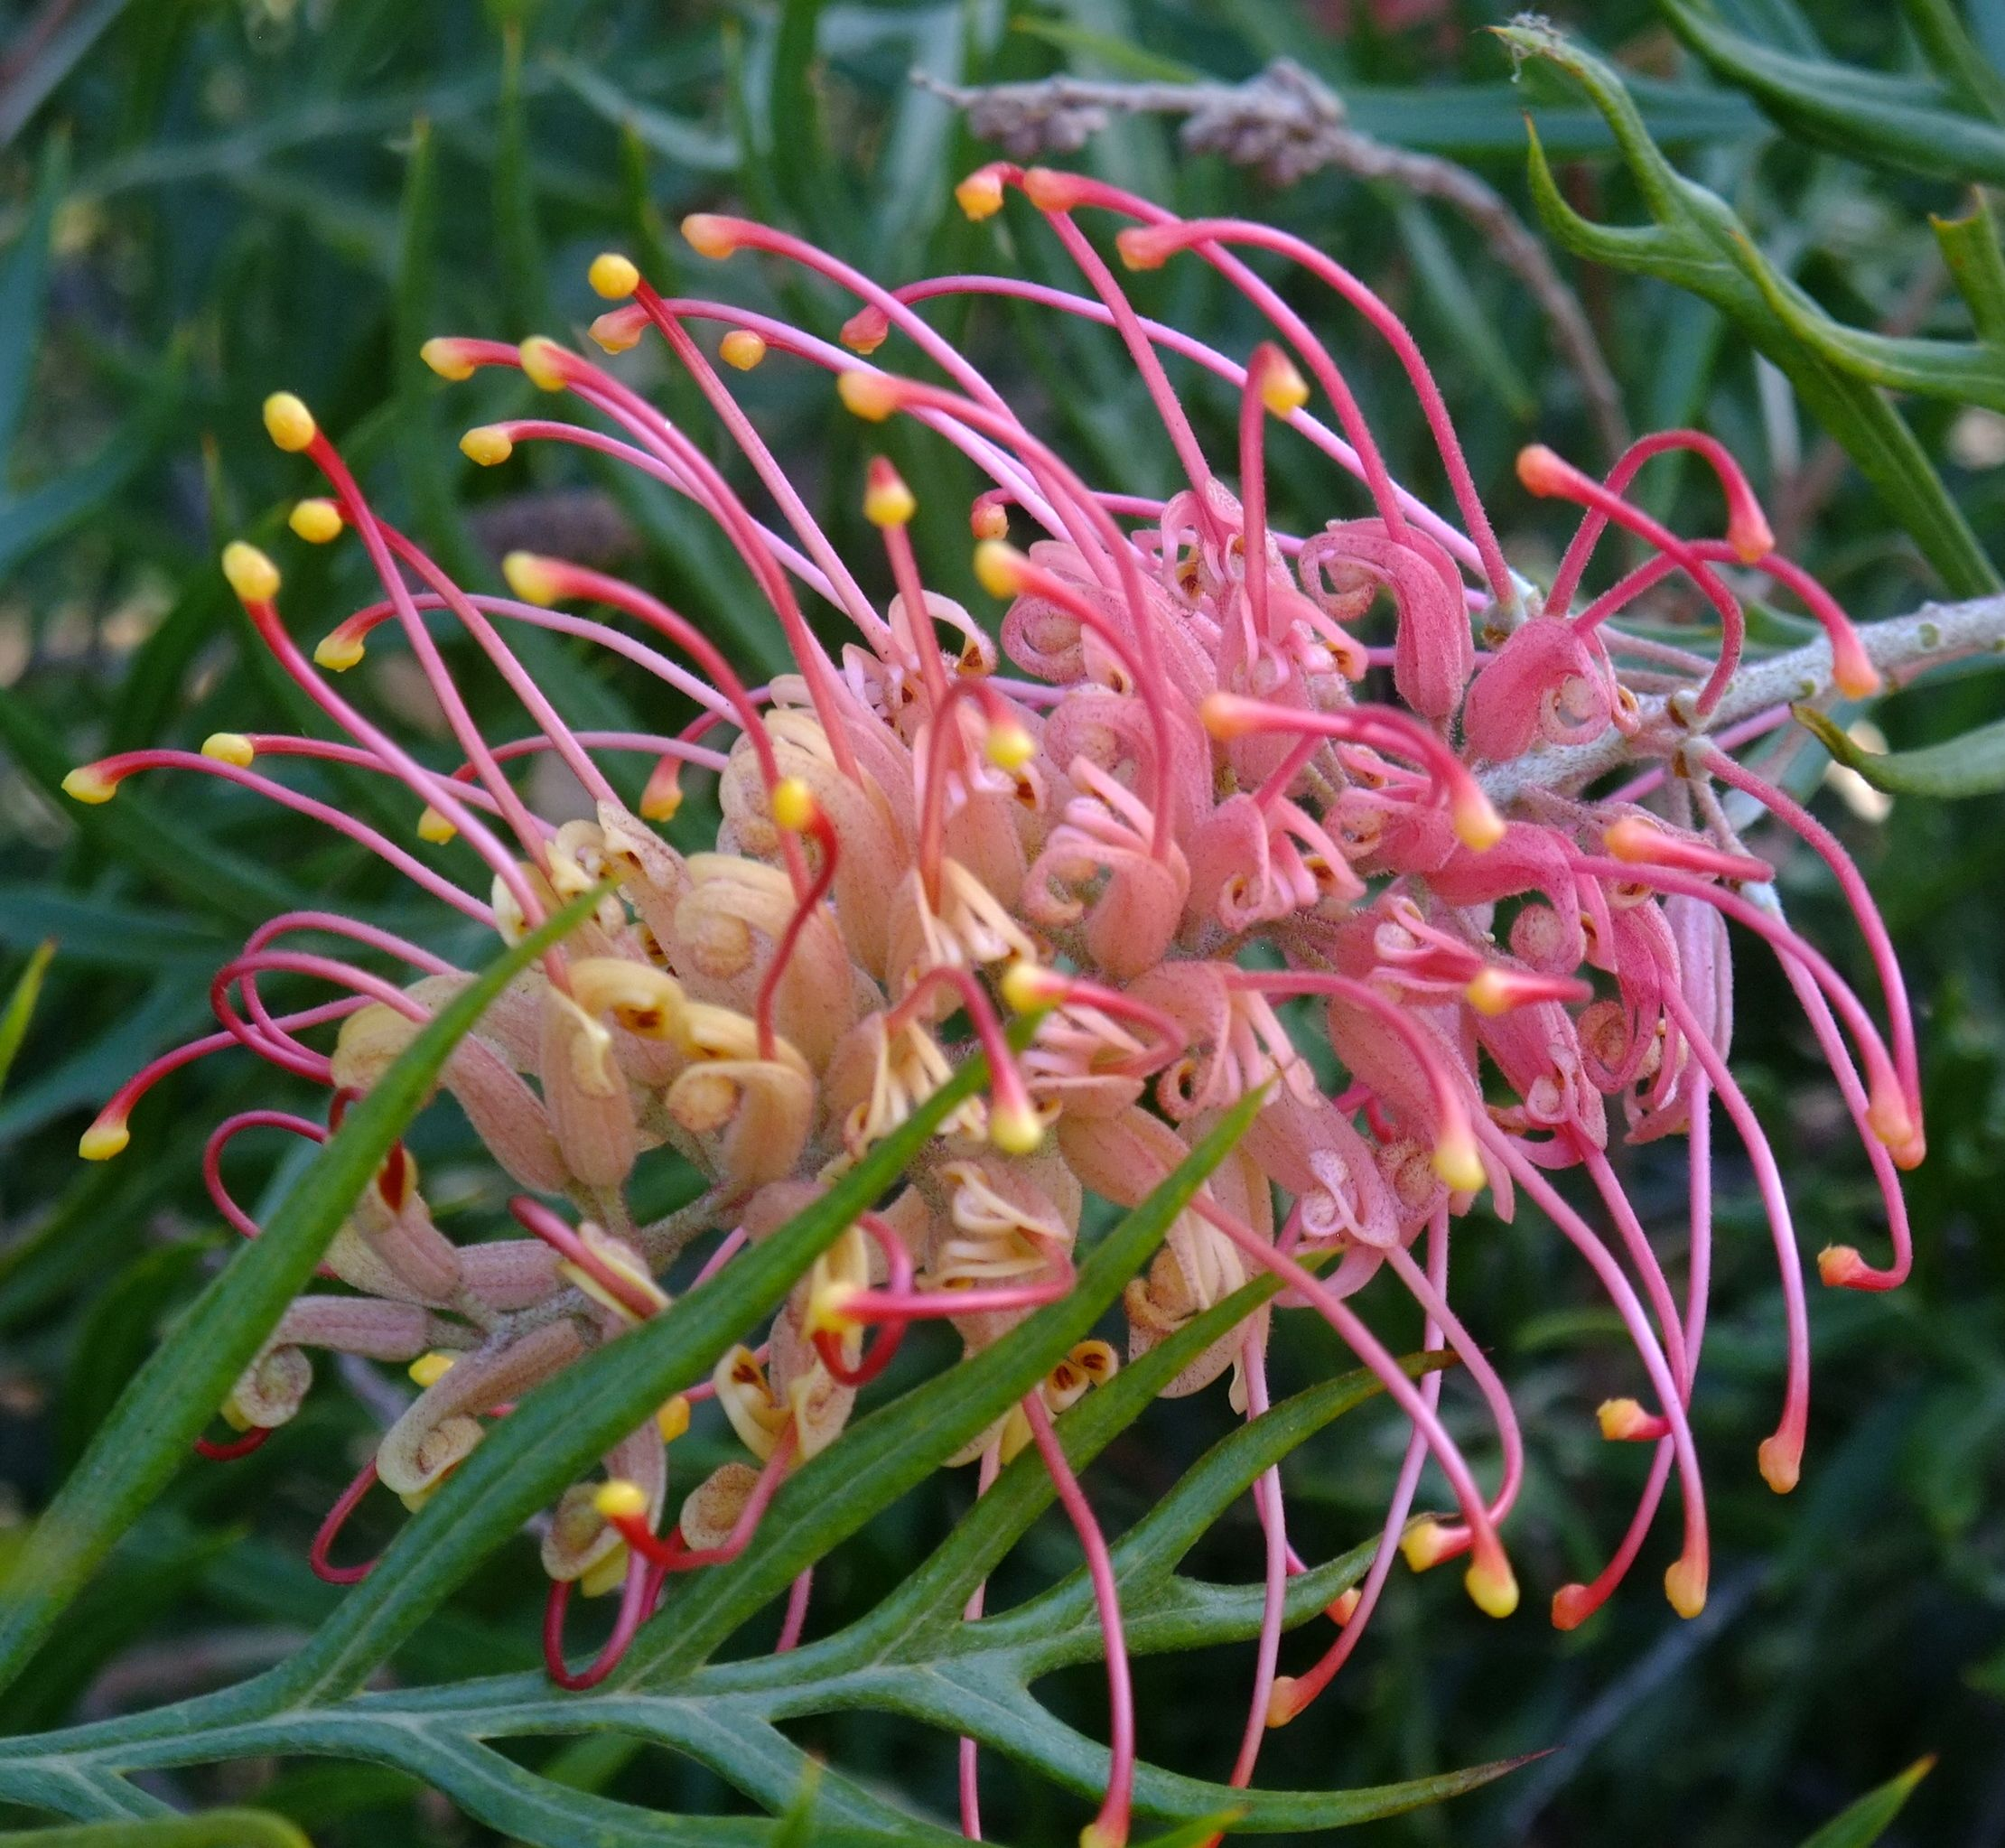 Australian Native Shade Plants: Gorgeous Native Australian Flora